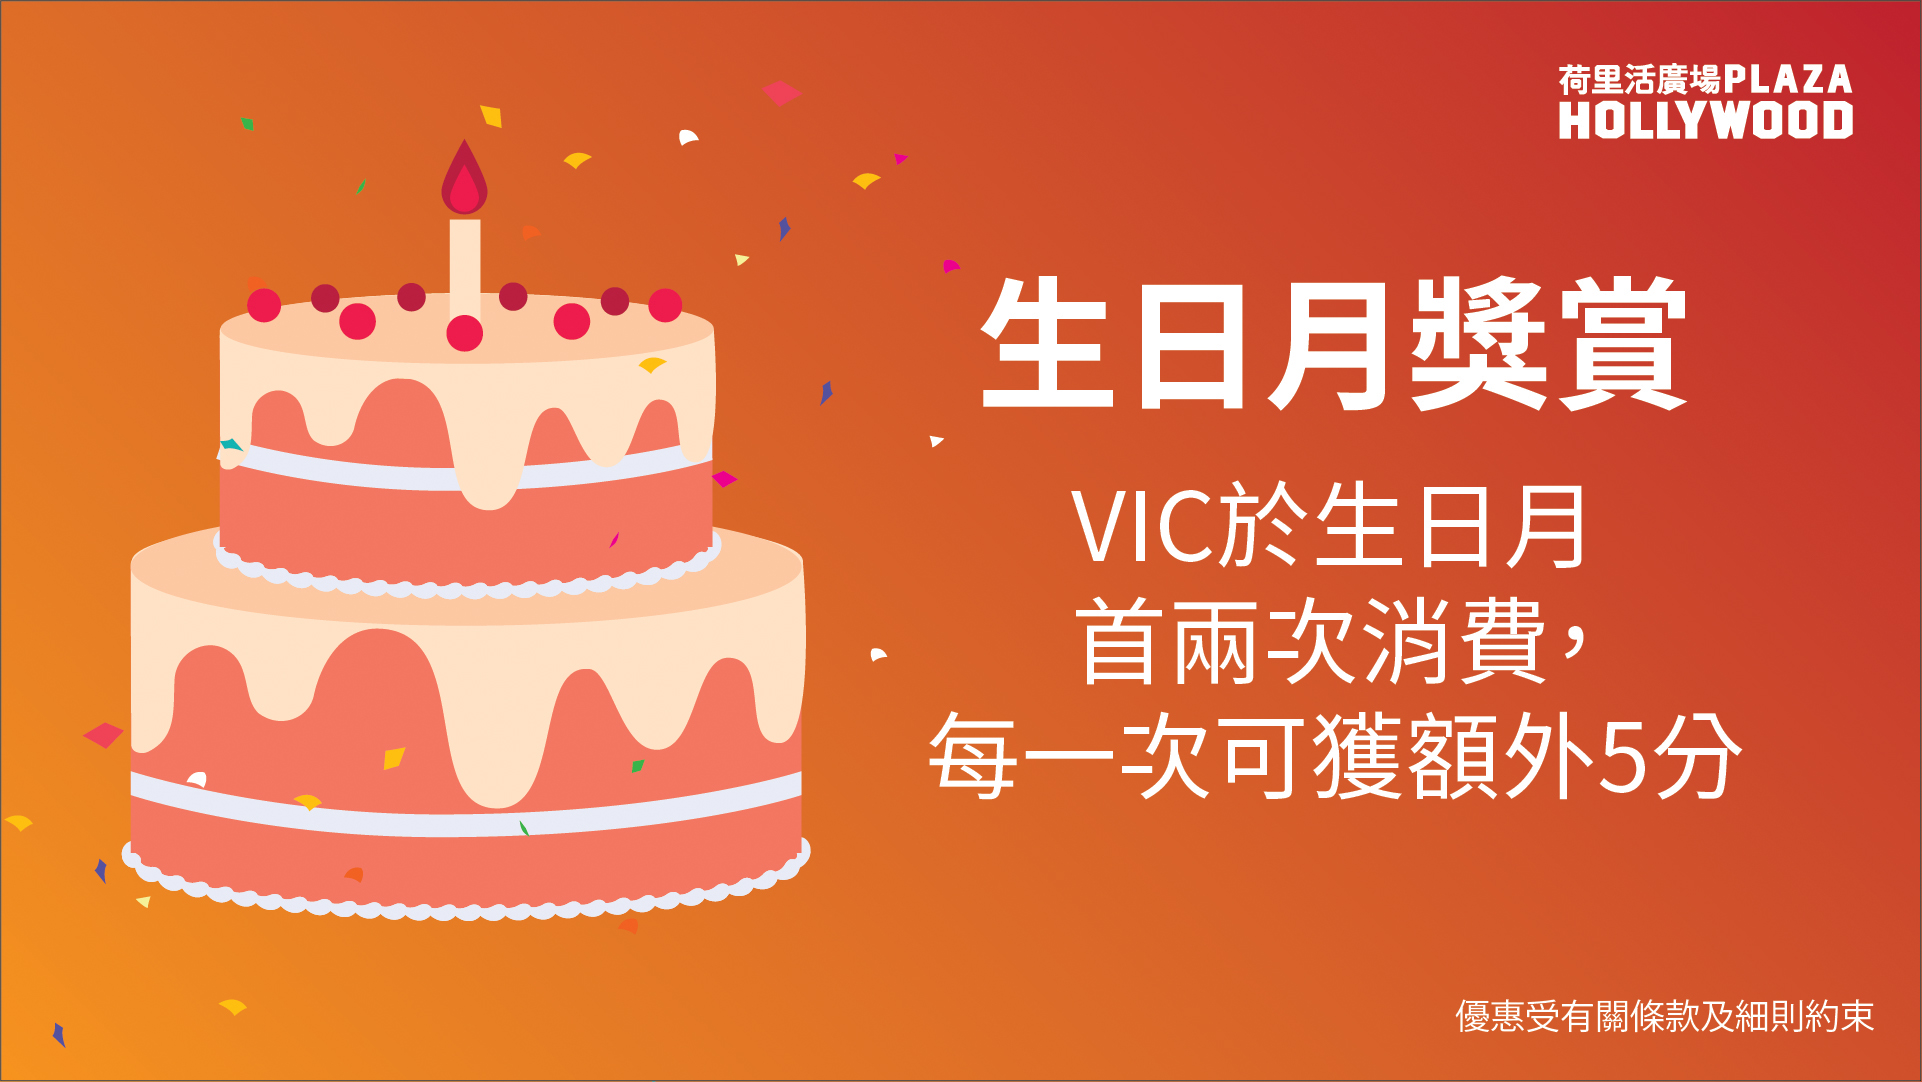 VIC special 2